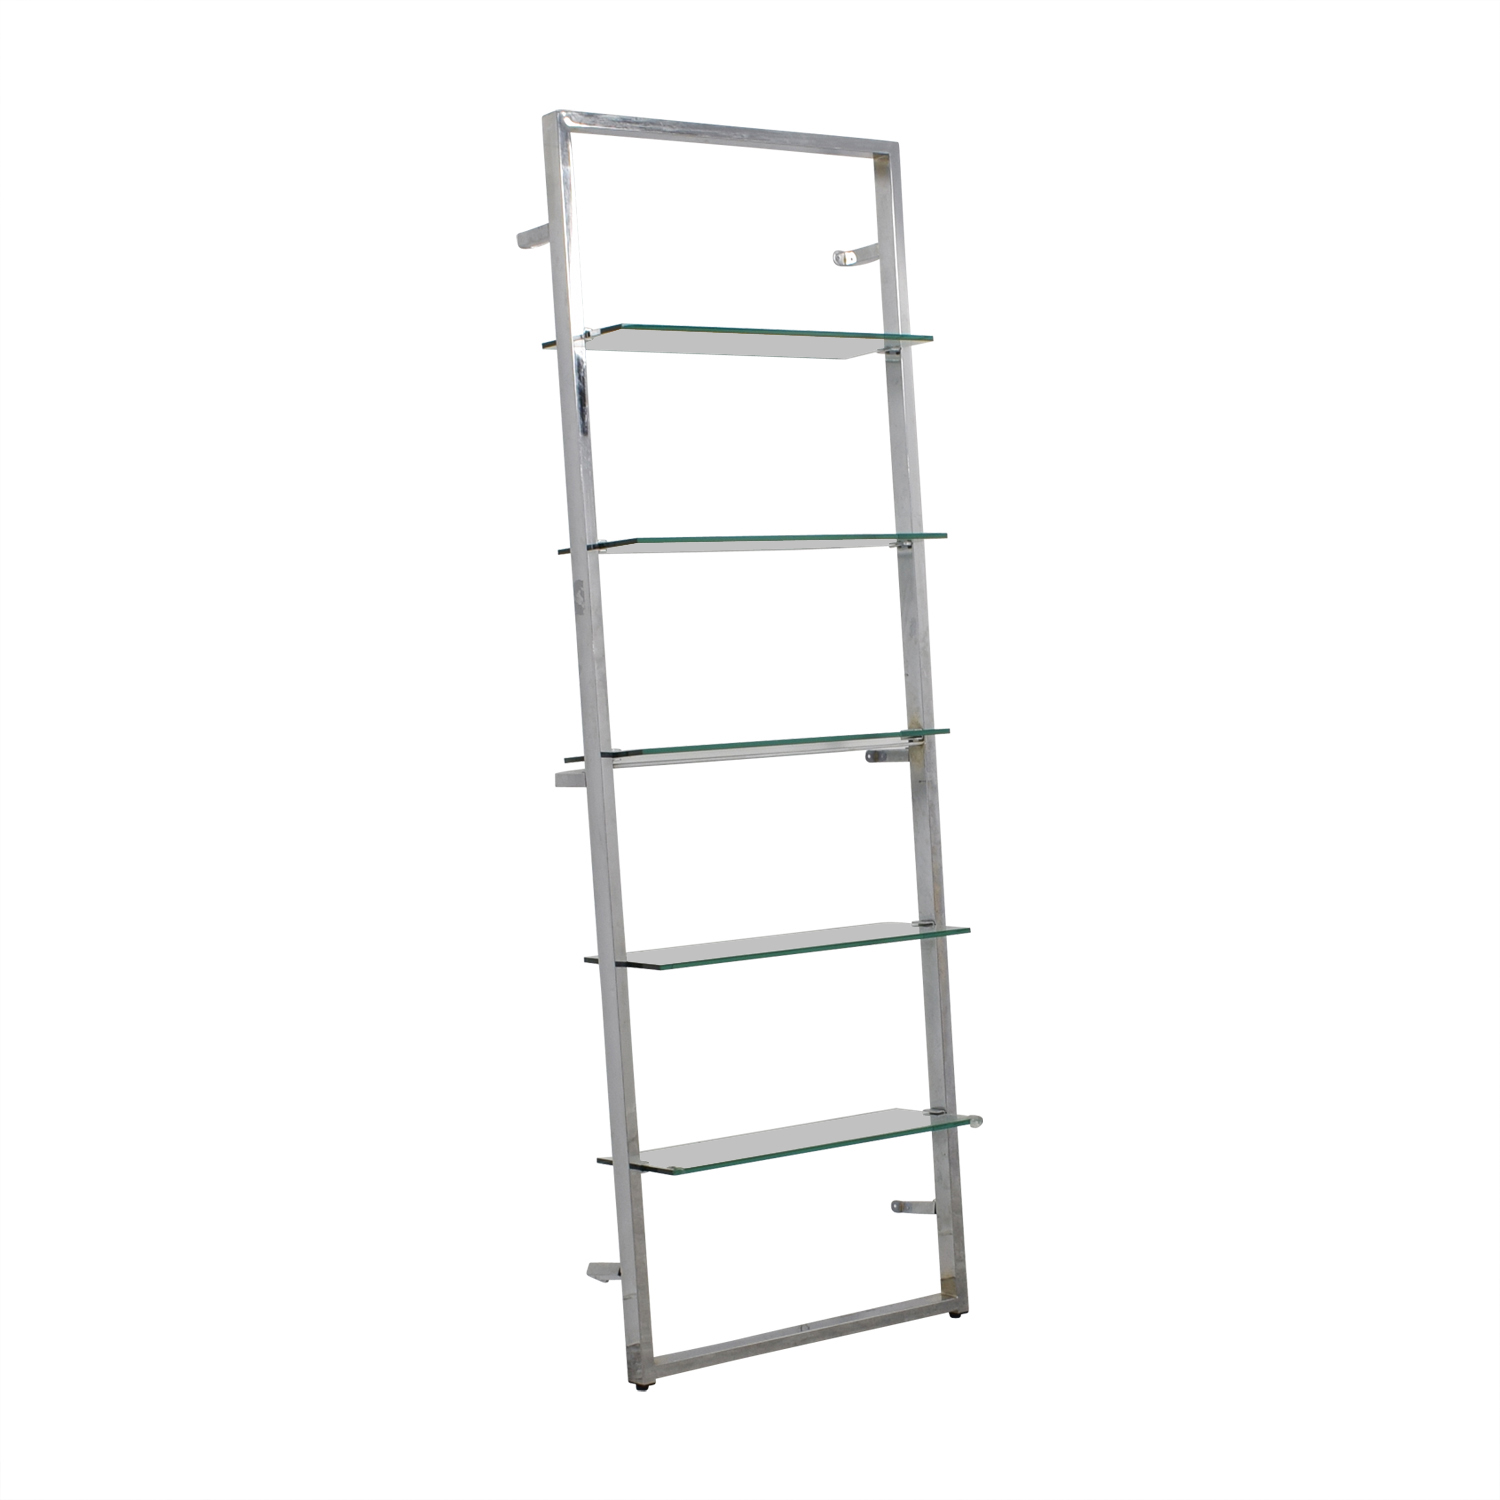 CB2 CB2 Tesso Chrome and Glass Wall Mounted Bookcase